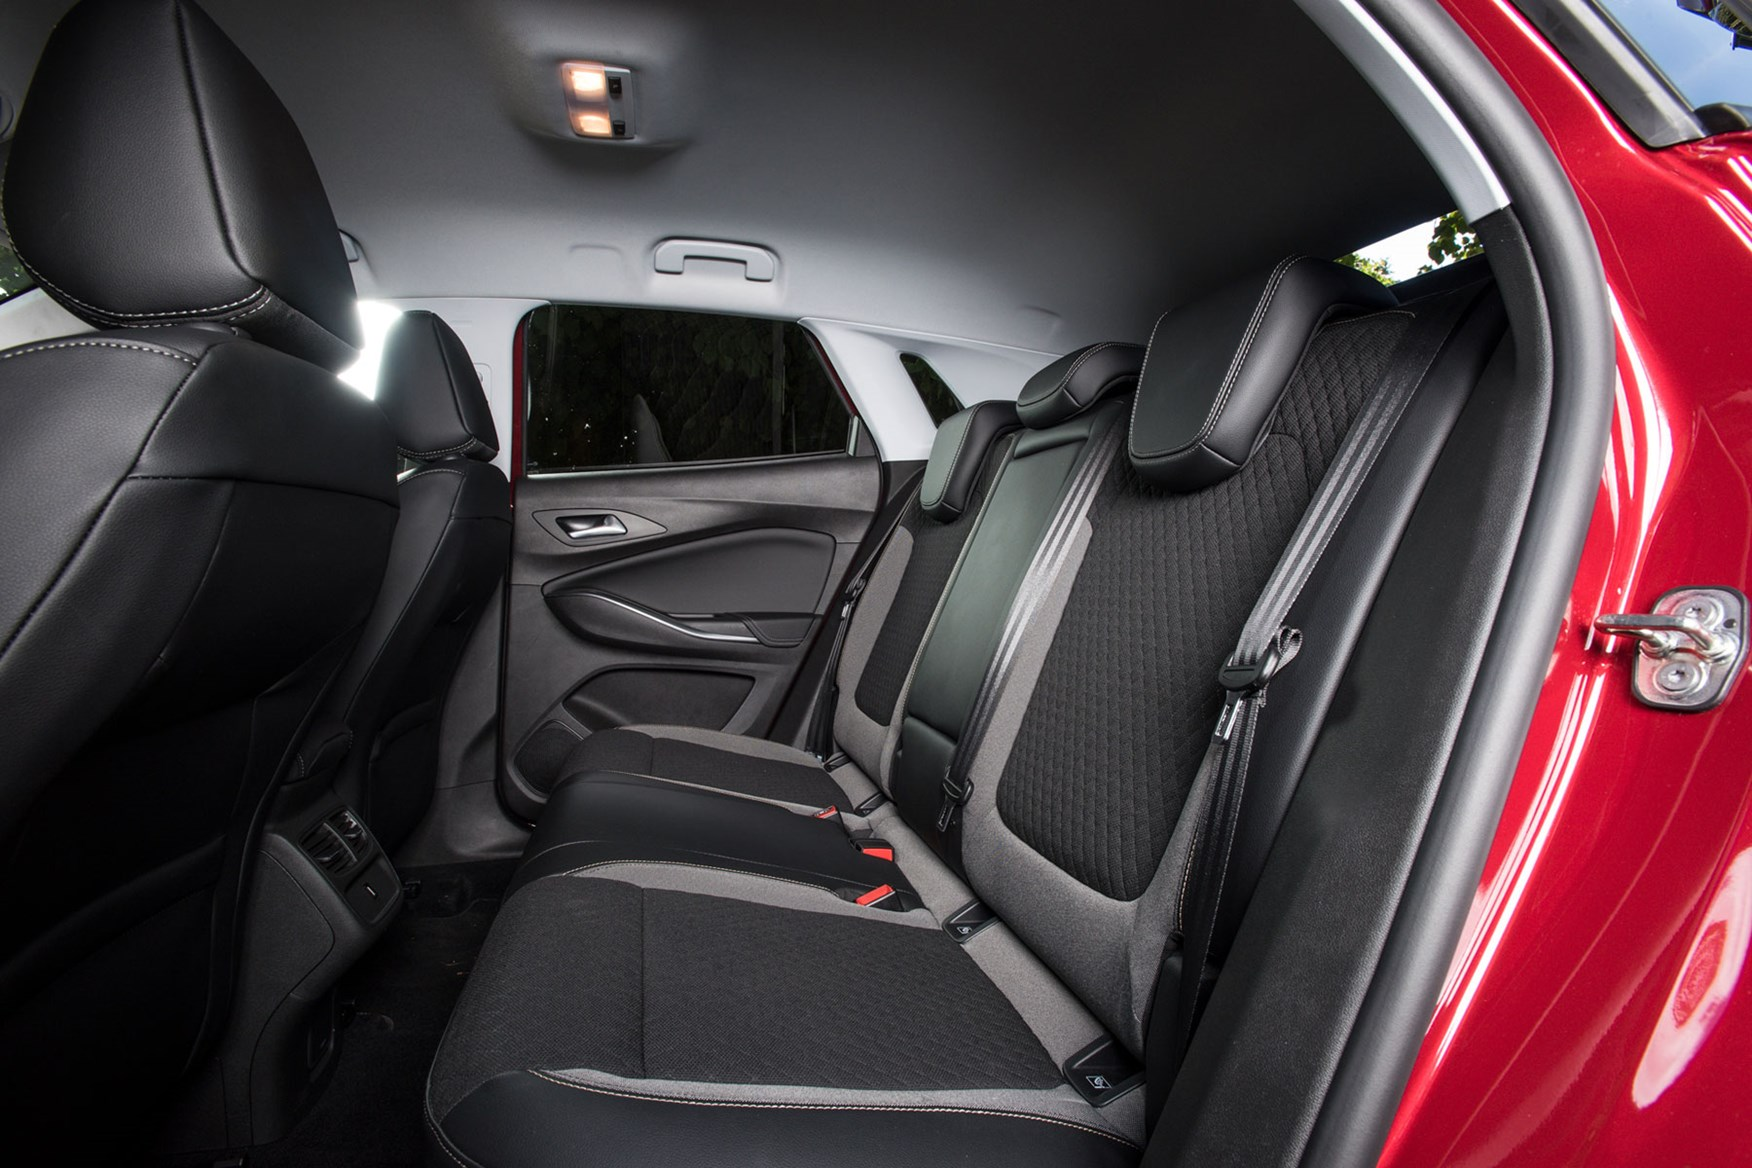 Toyota Suv Used >> Vauxhall Grandland X Review (2019) | Parkers